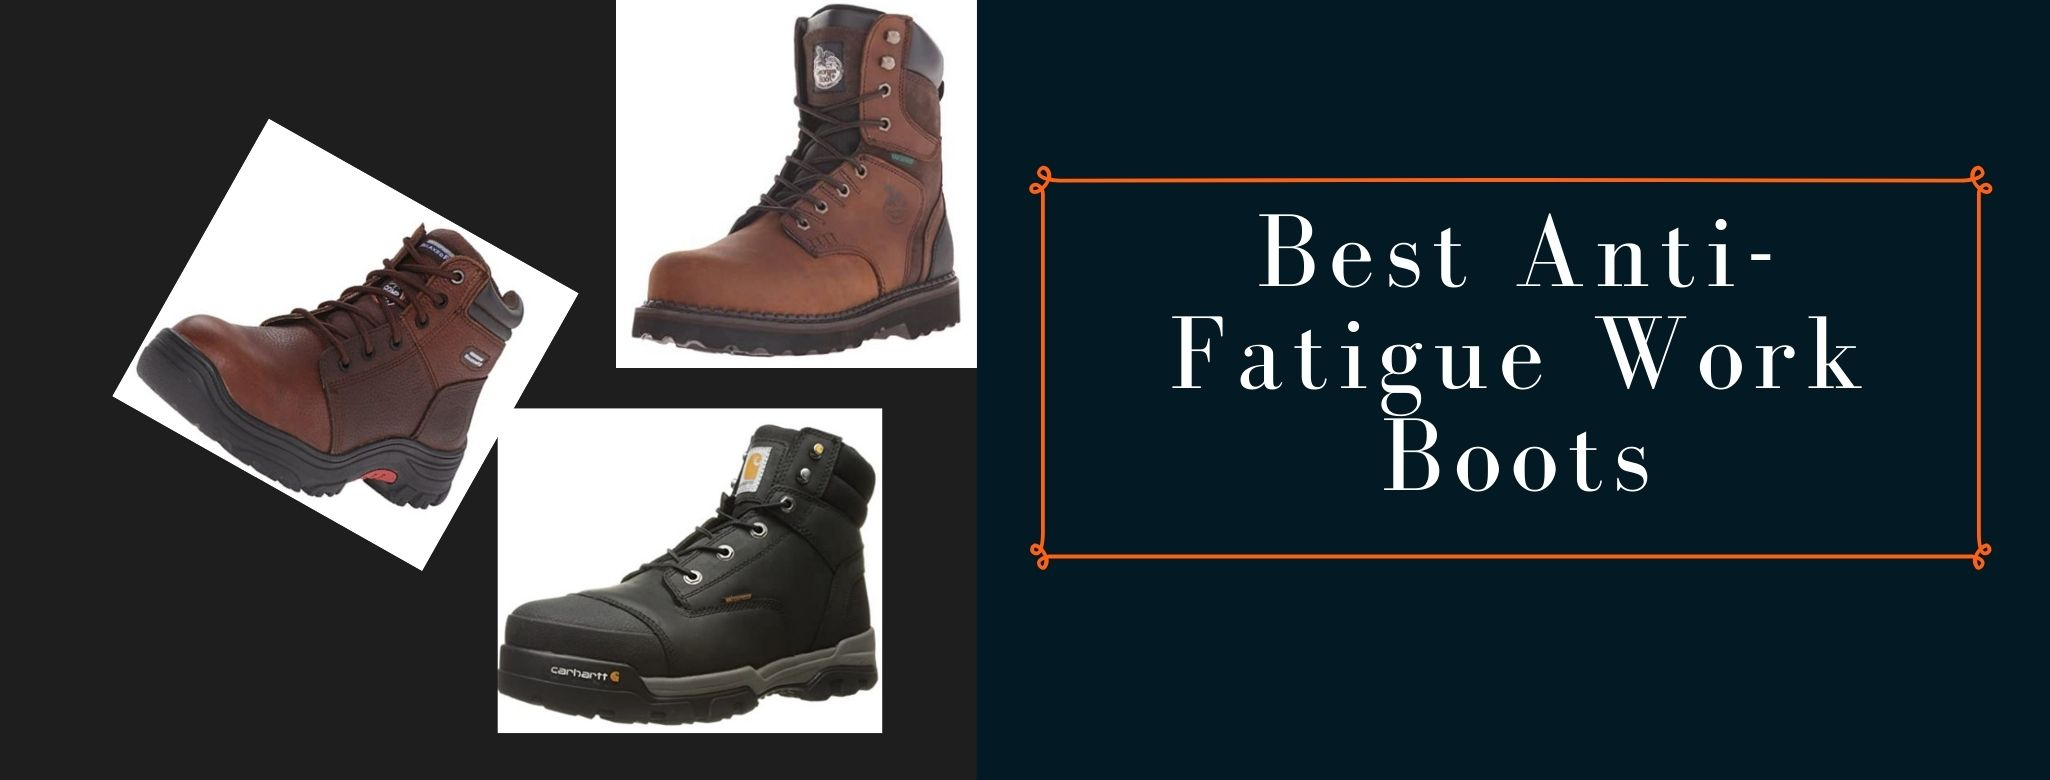 Top-rated comfortable boots for tired feet